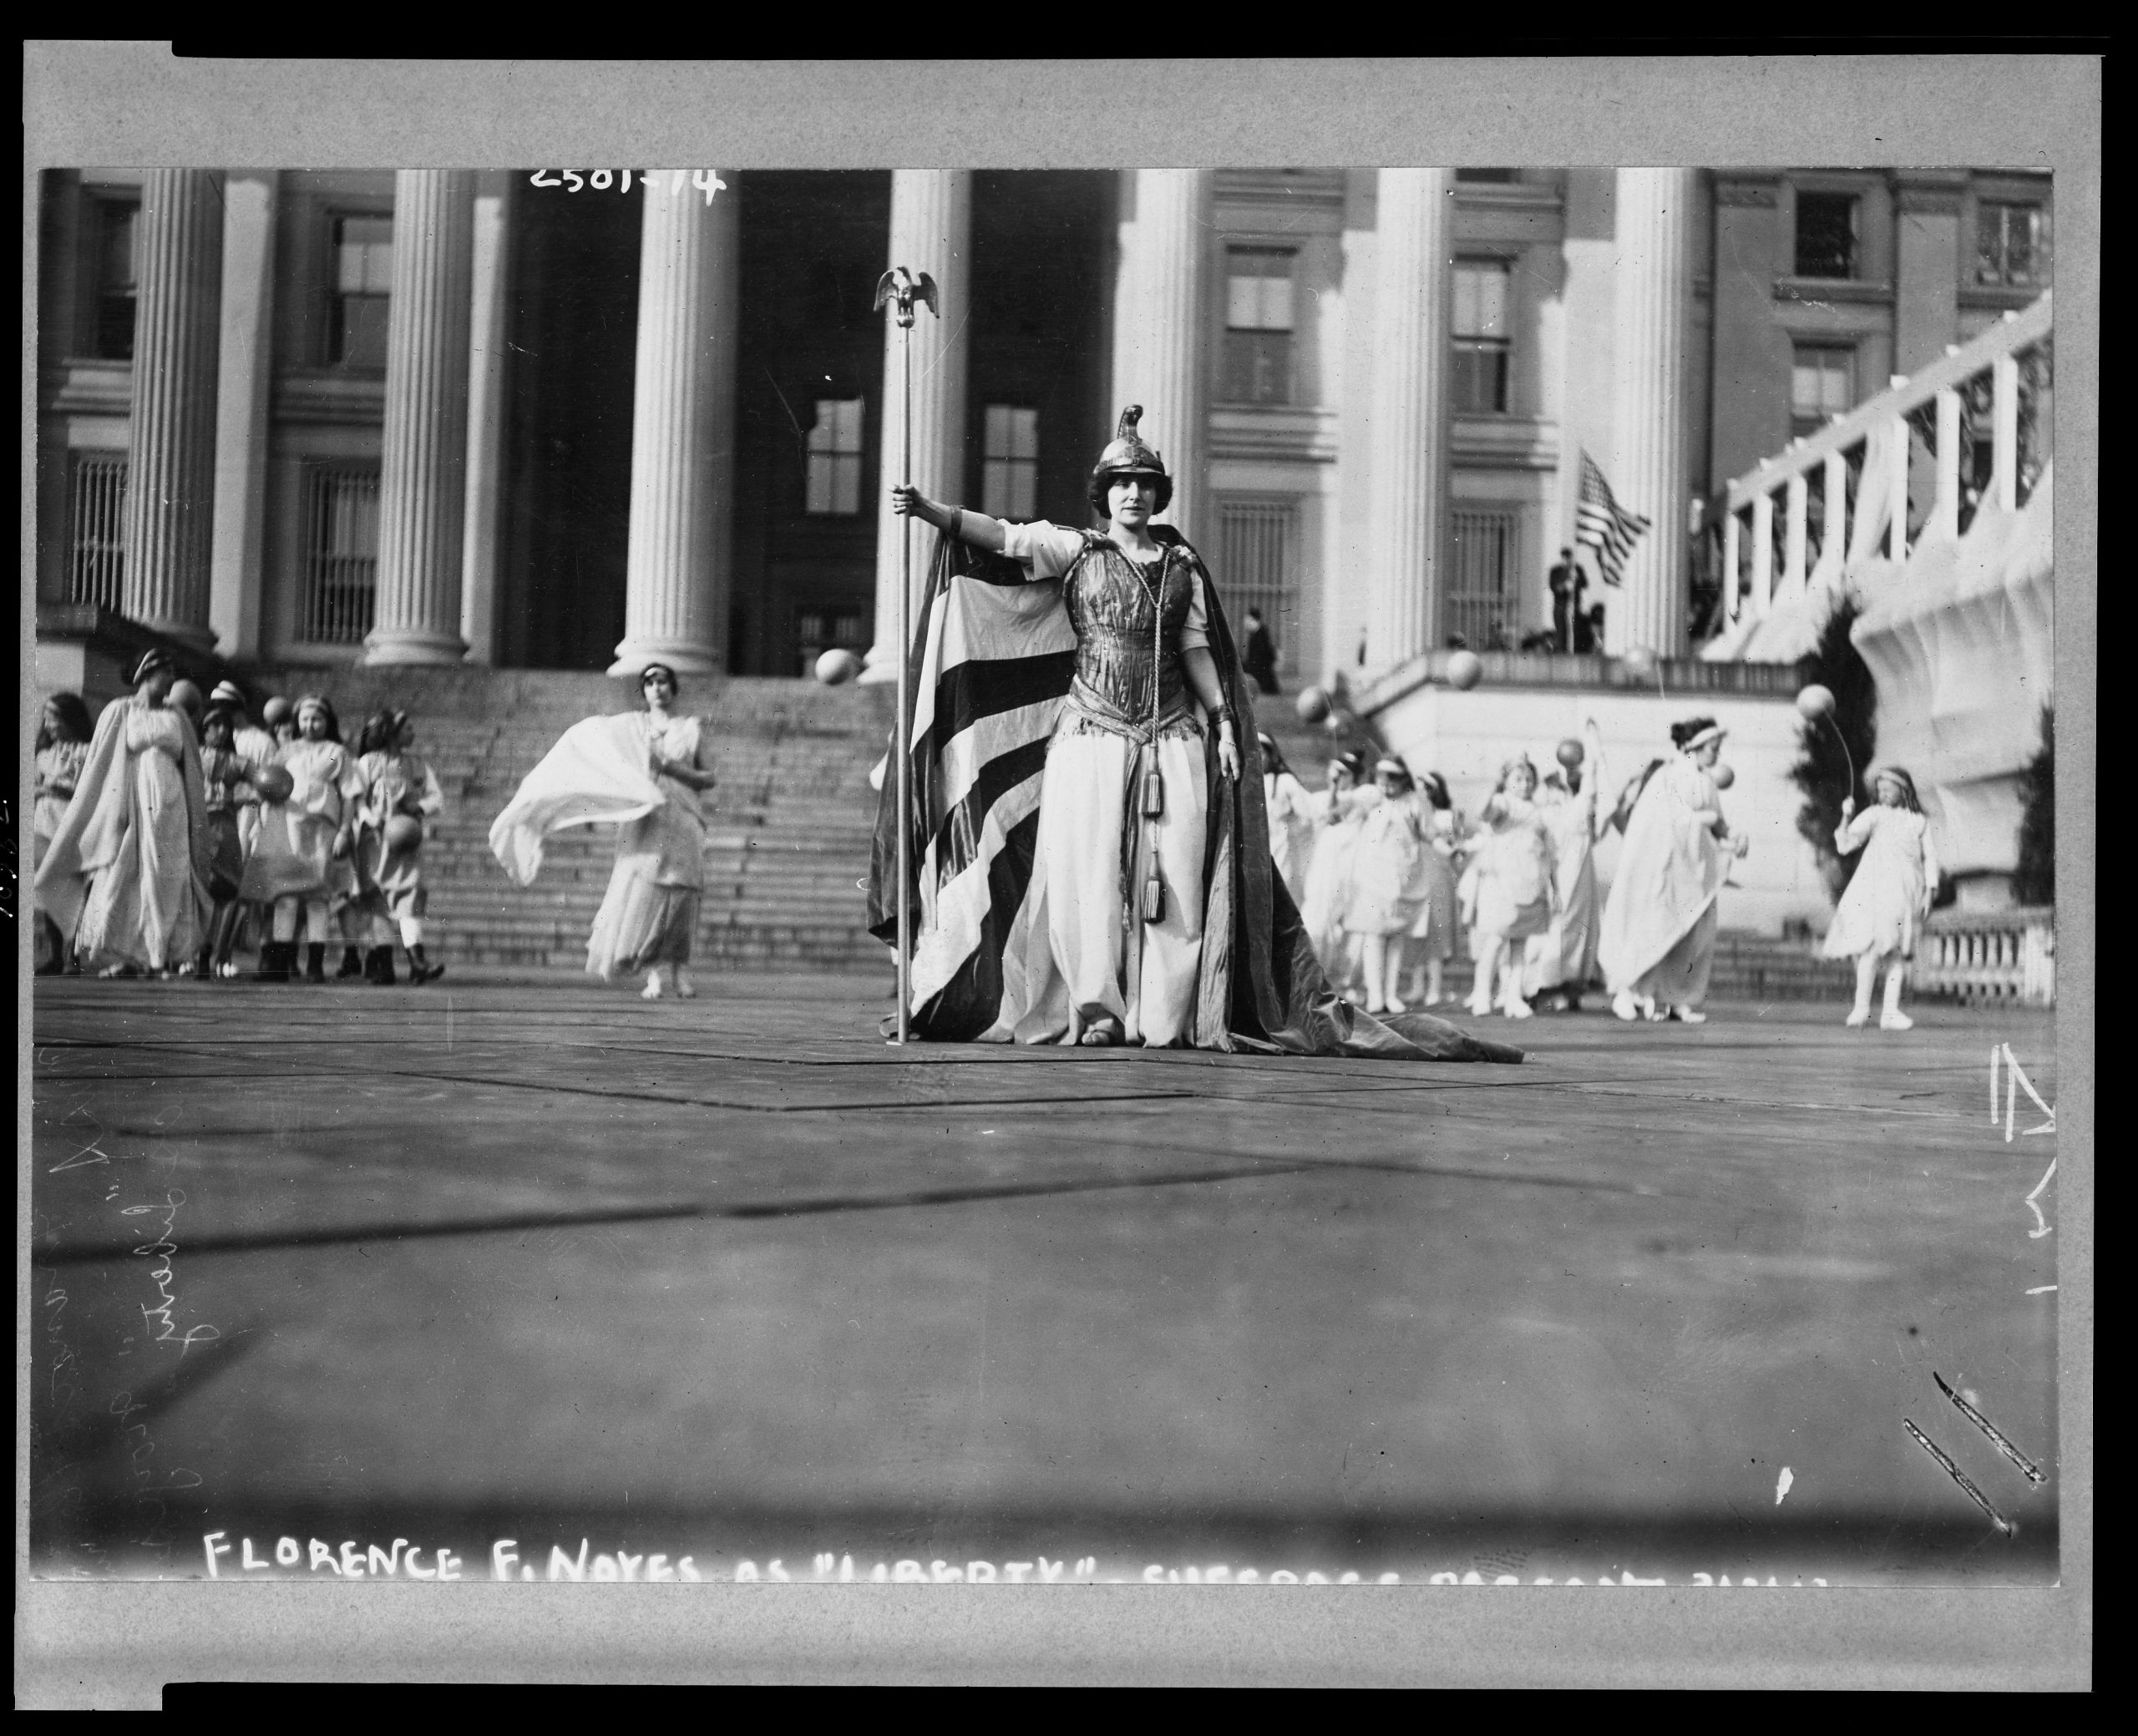 Suffrage Pageant, 1913